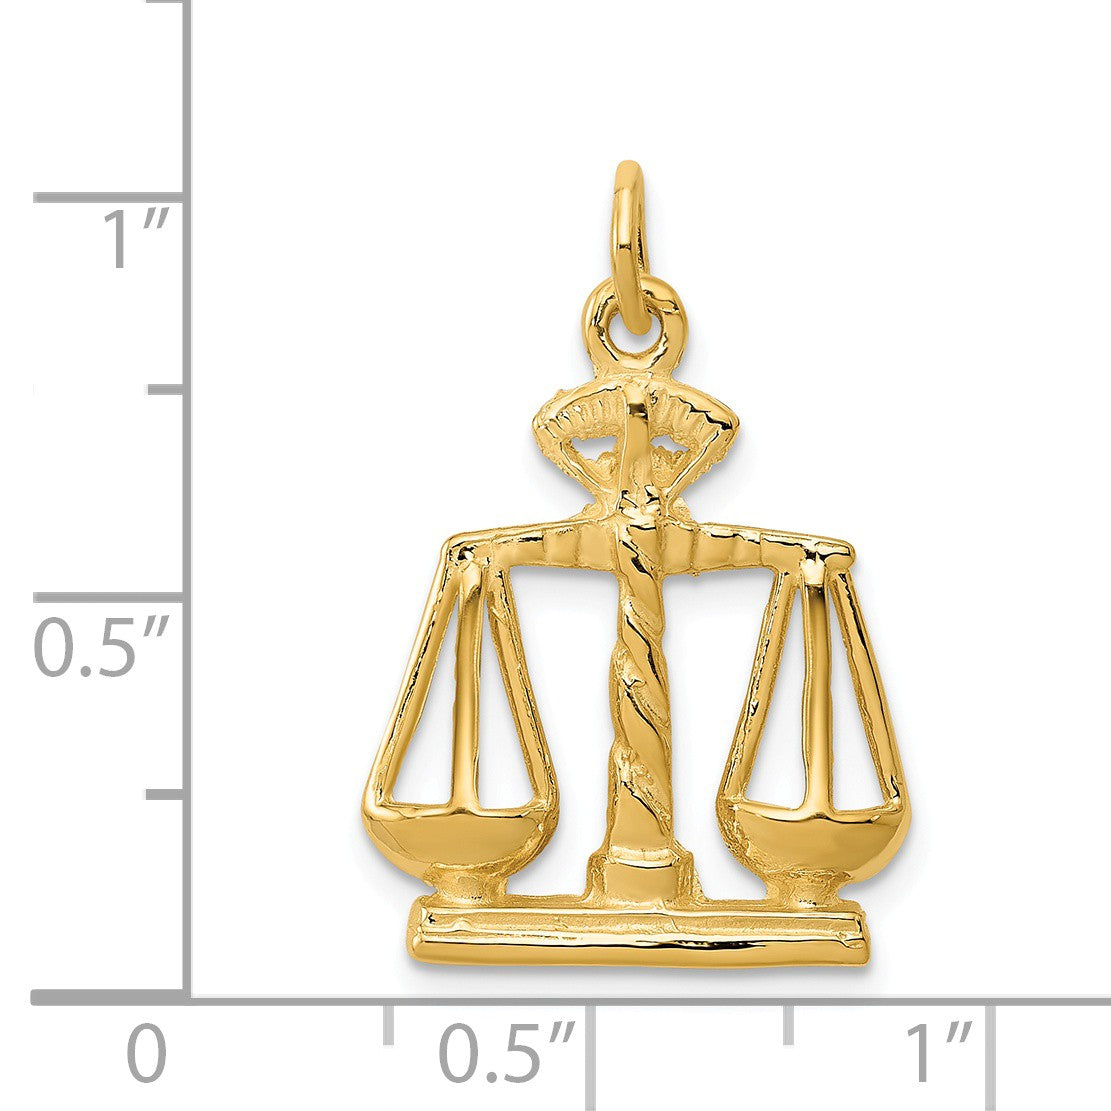 Alternate view of the 14k Yellow Gold Scales of Justice Charm by The Black Bow Jewelry Co.